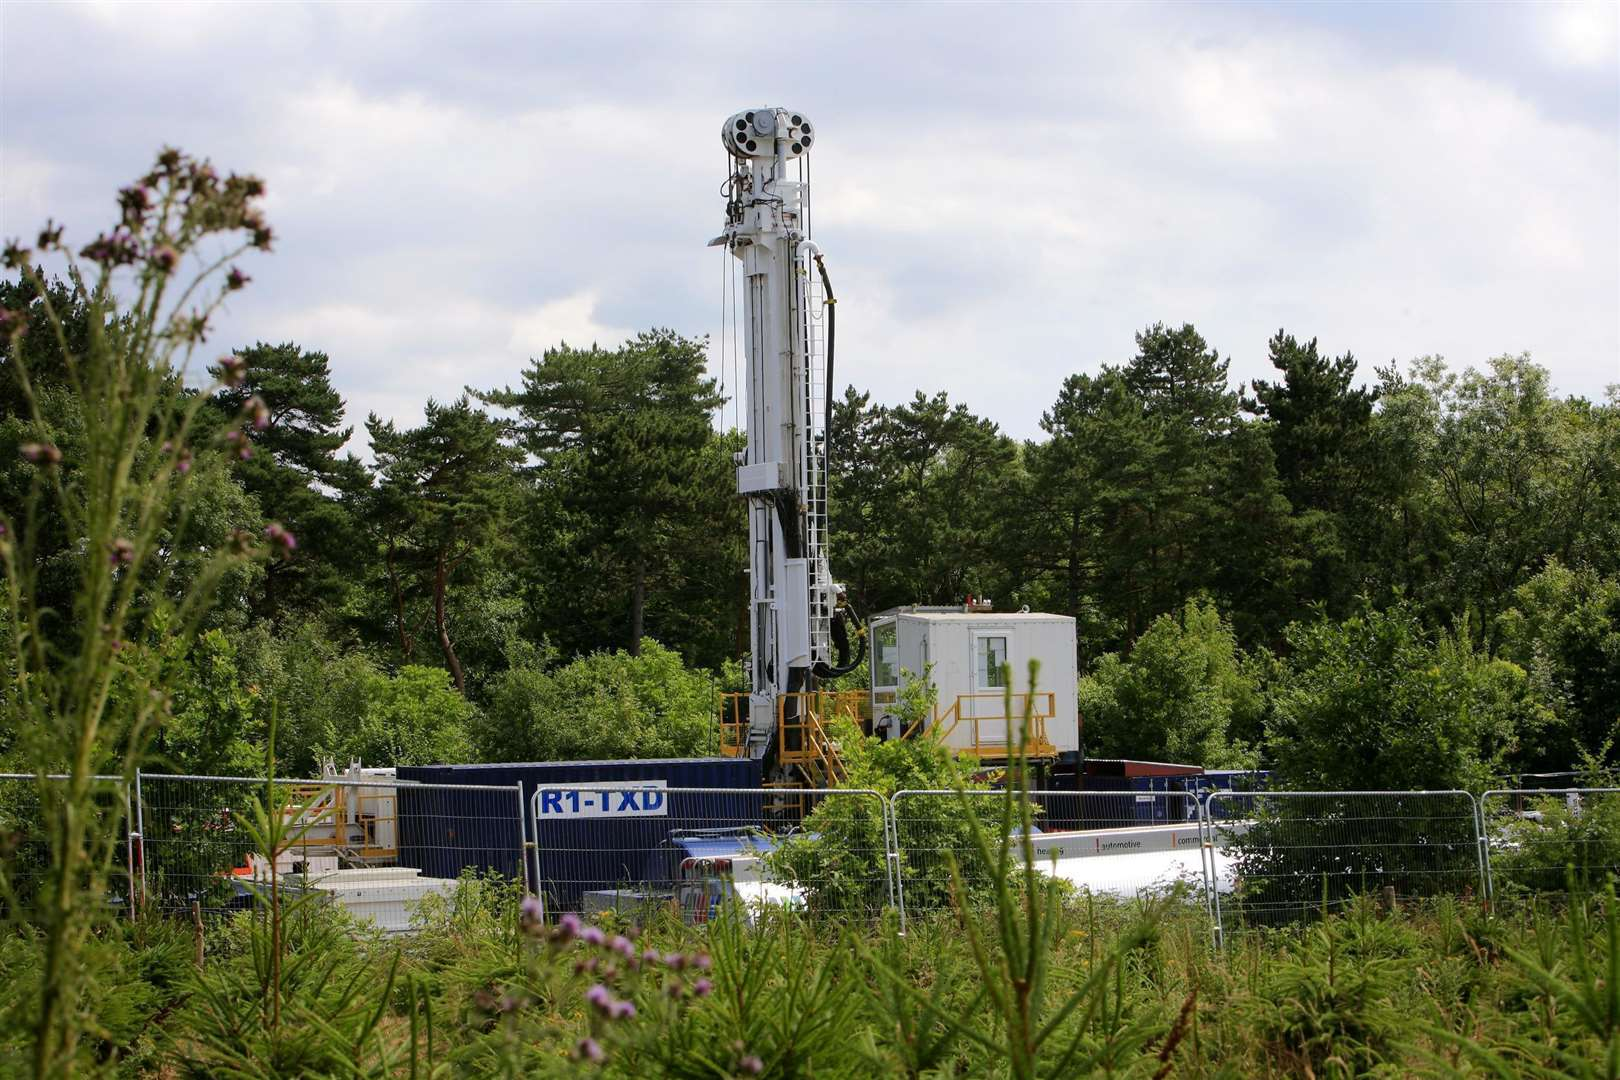 An exploratory drilling rig in Balcombe, Sussex. Picture: Jiri Rezac/Greenpeace